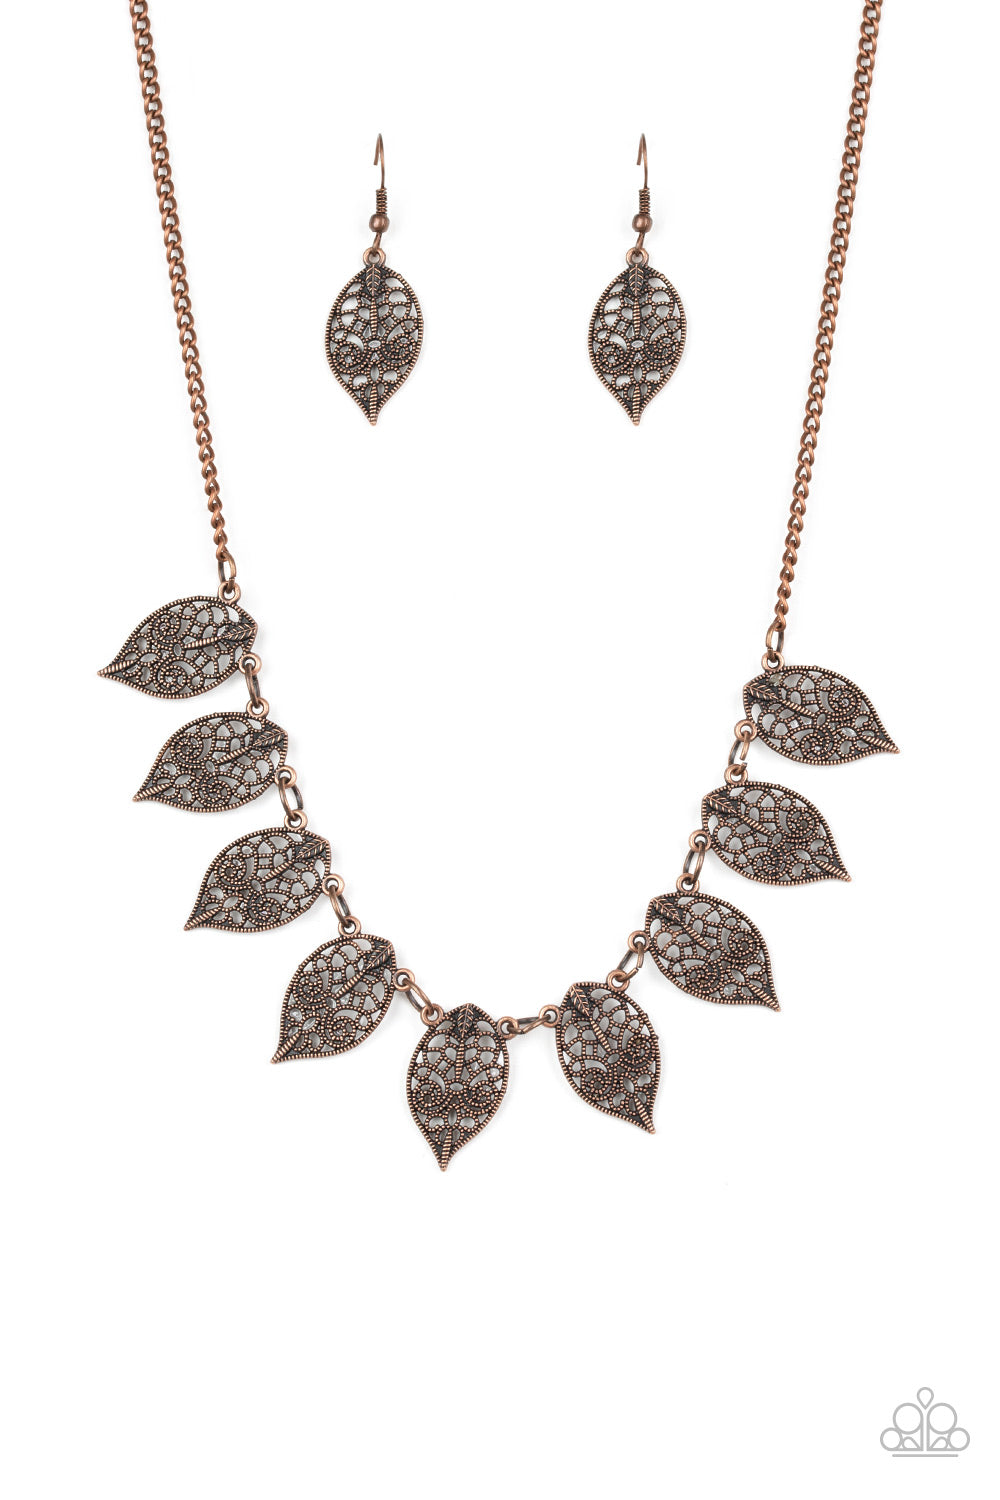 Paparazzi Accessories - Leafy Lagoon - Copper Necklace Set - JMJ Jewelry Collection